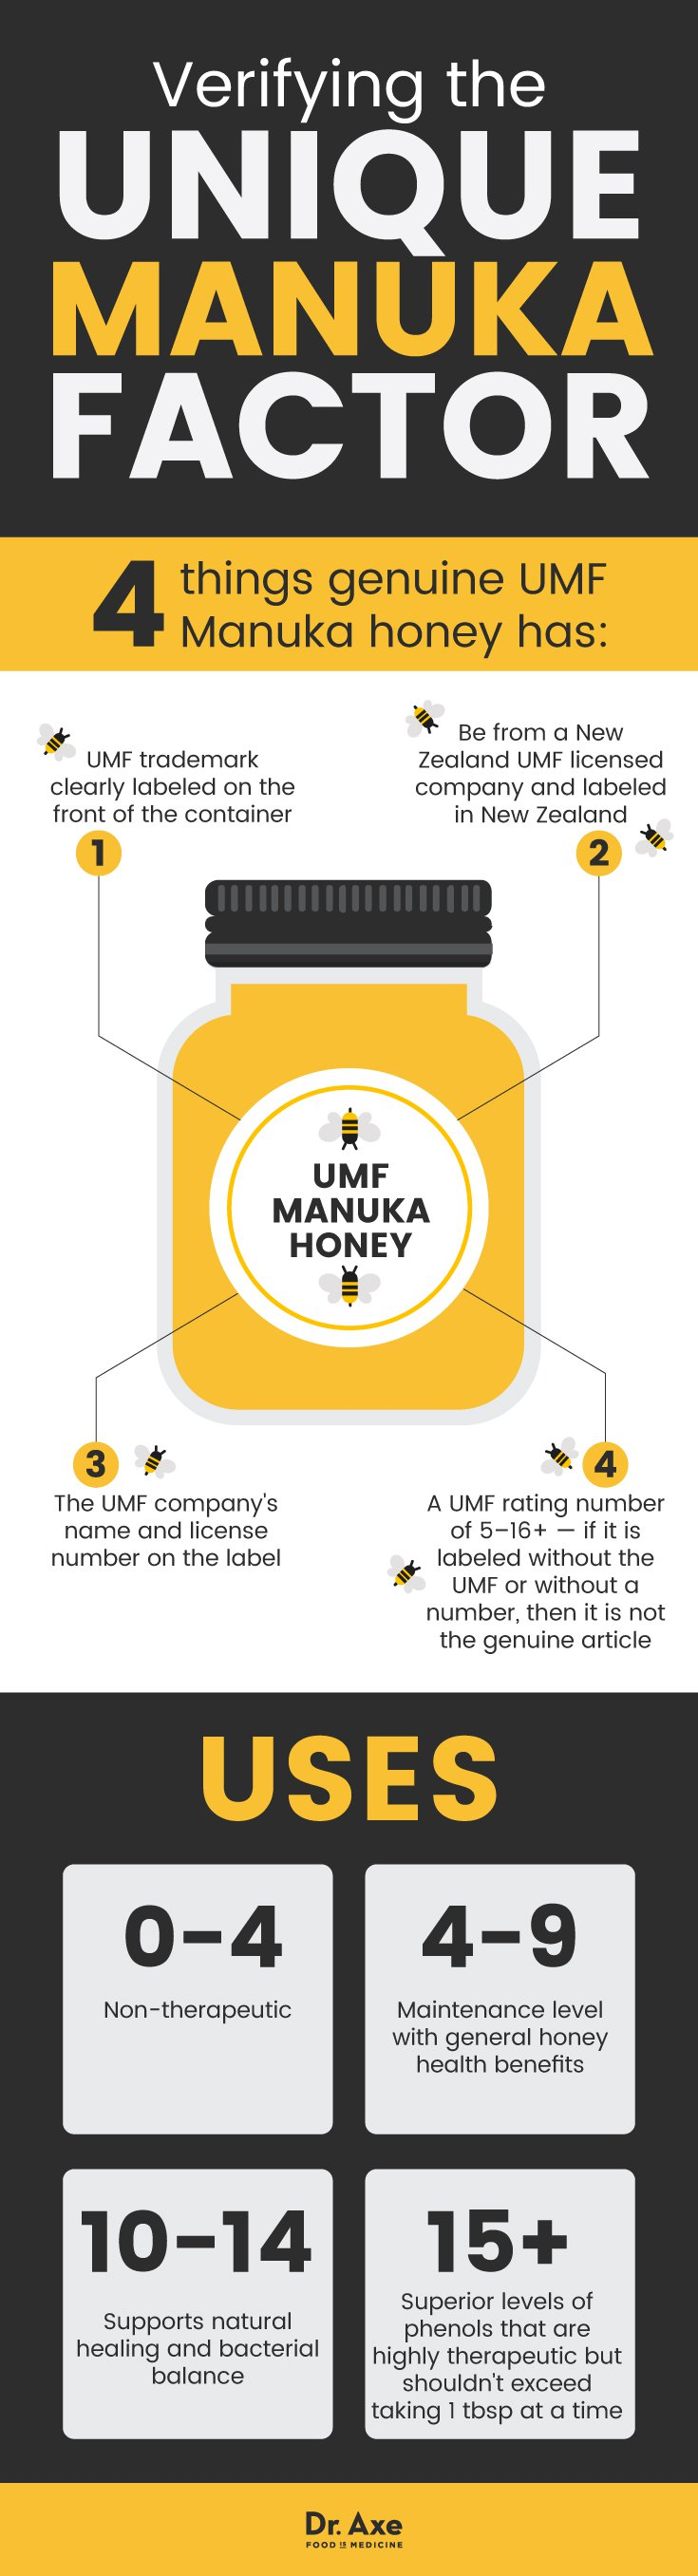 ManukaHoney_Infographic.jpg